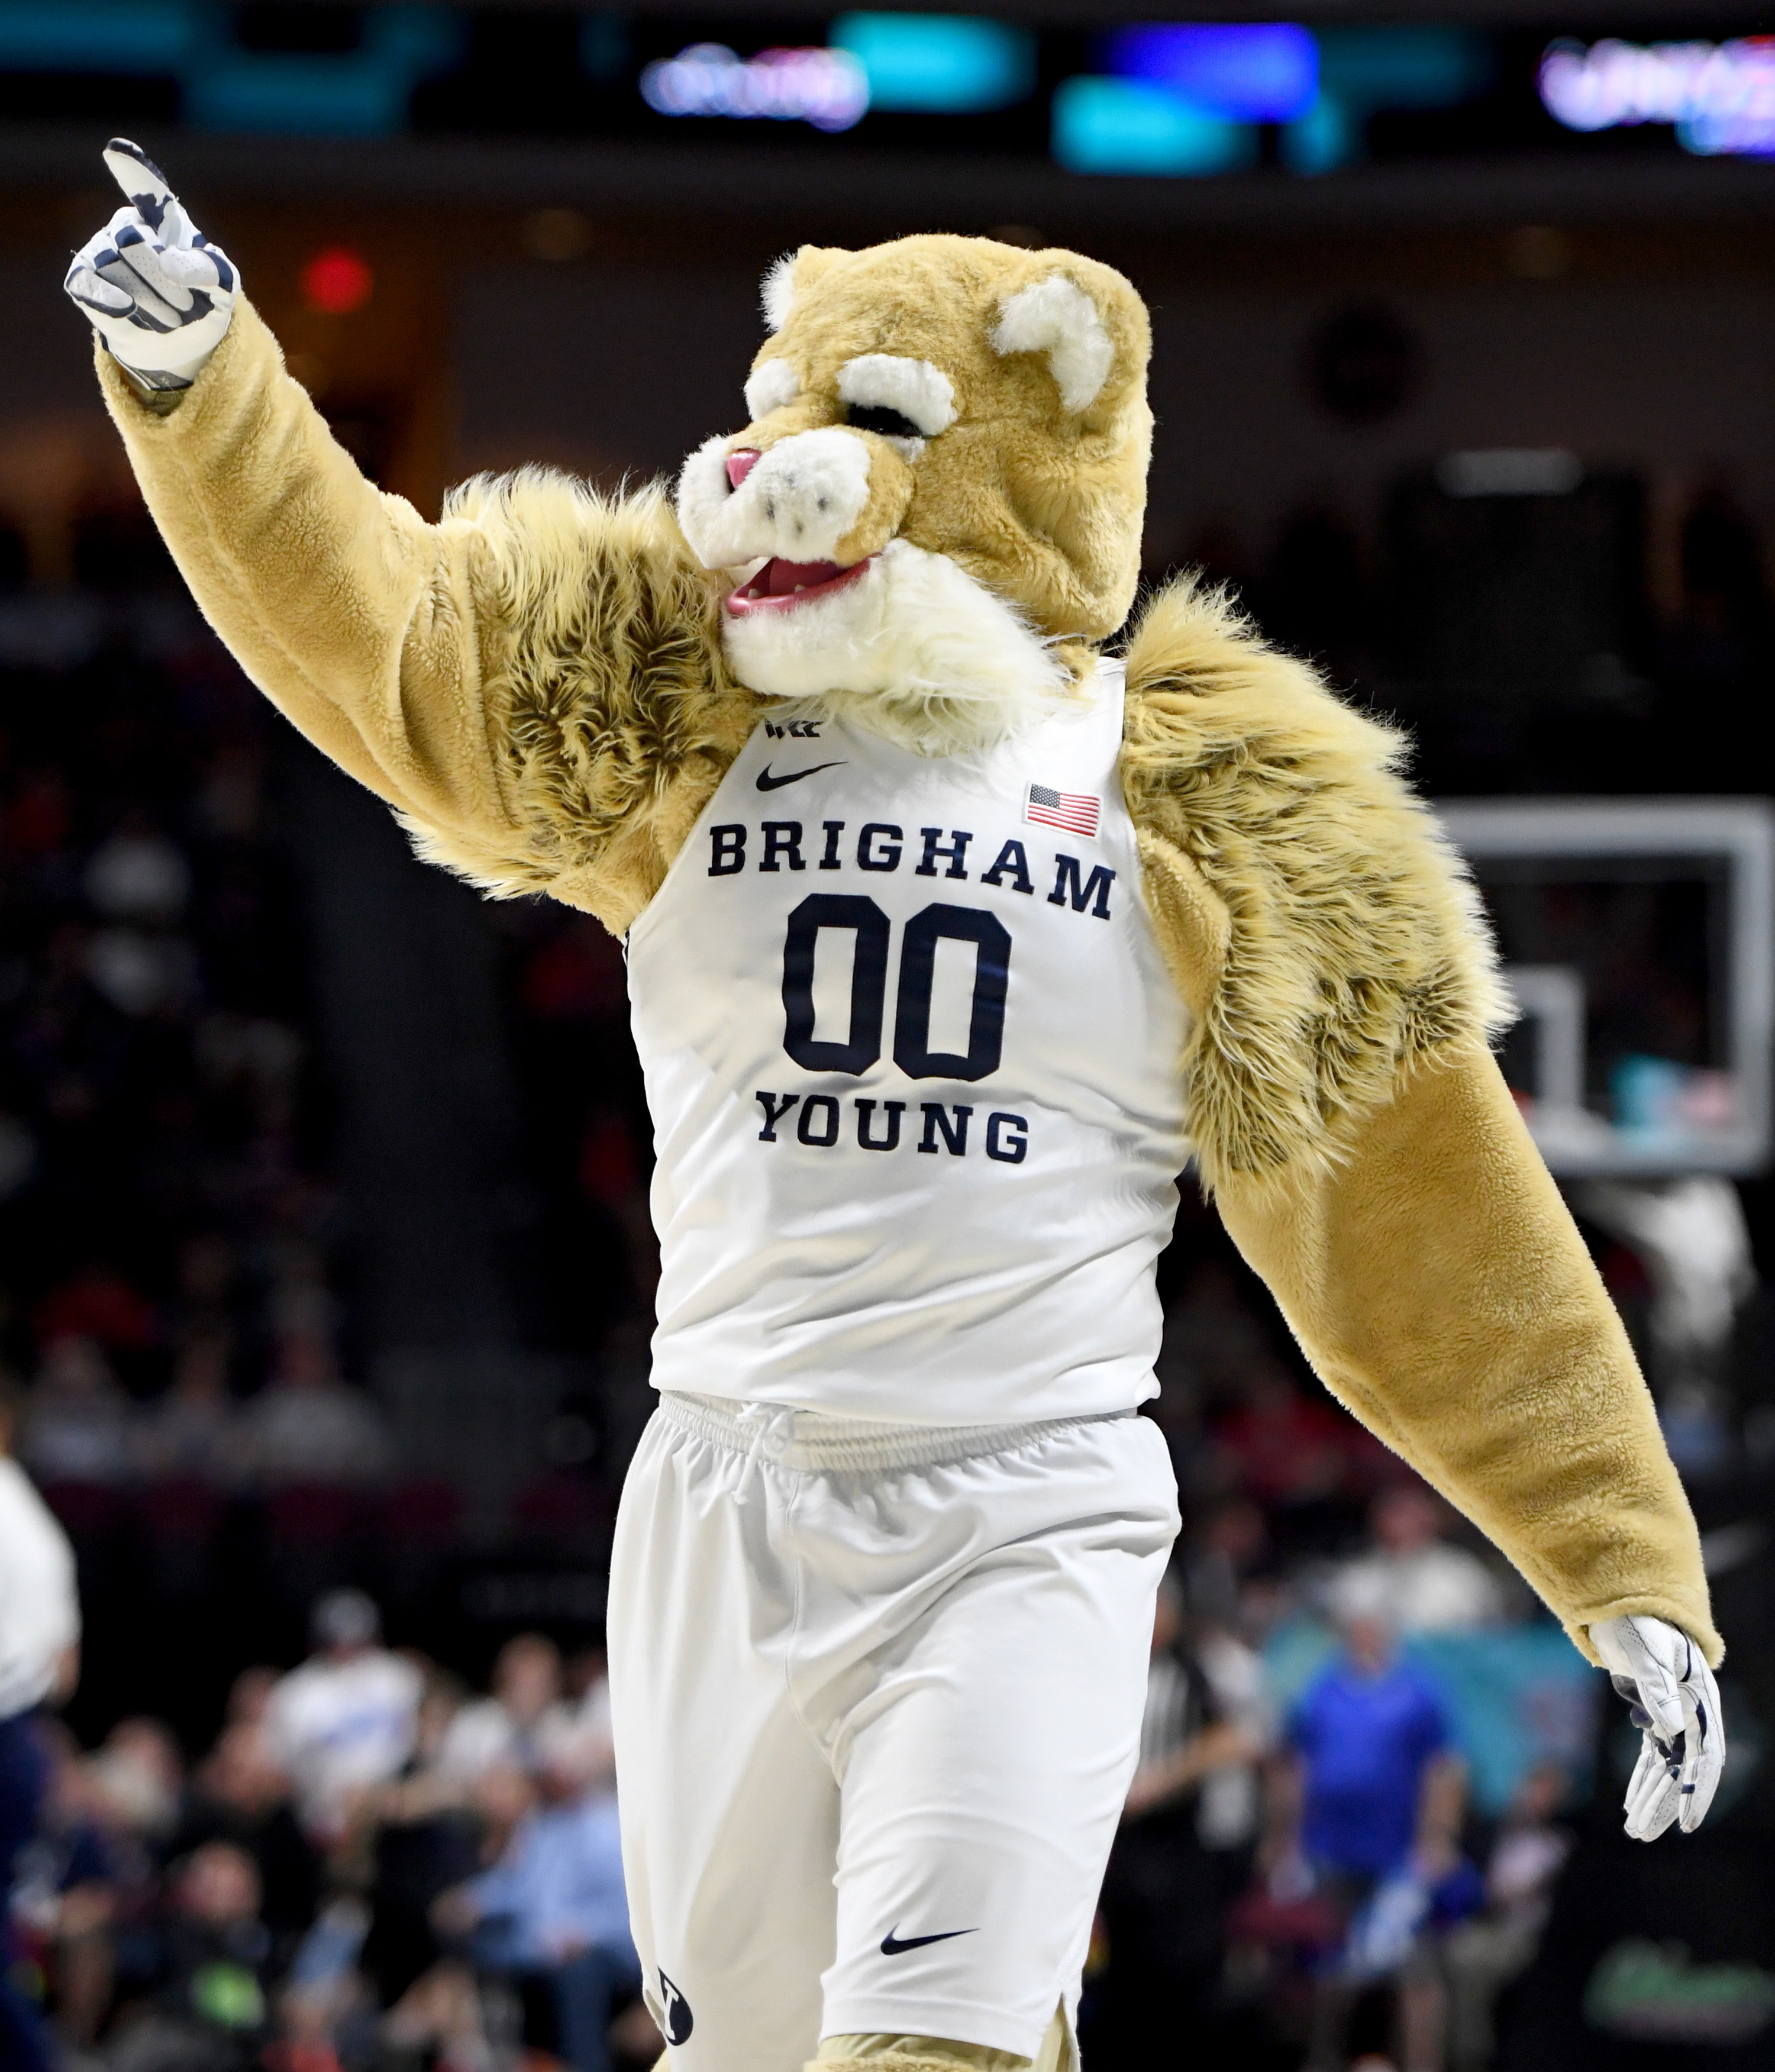 BYU cougar mascot in a white basketball jersey, pointing to the crowd.